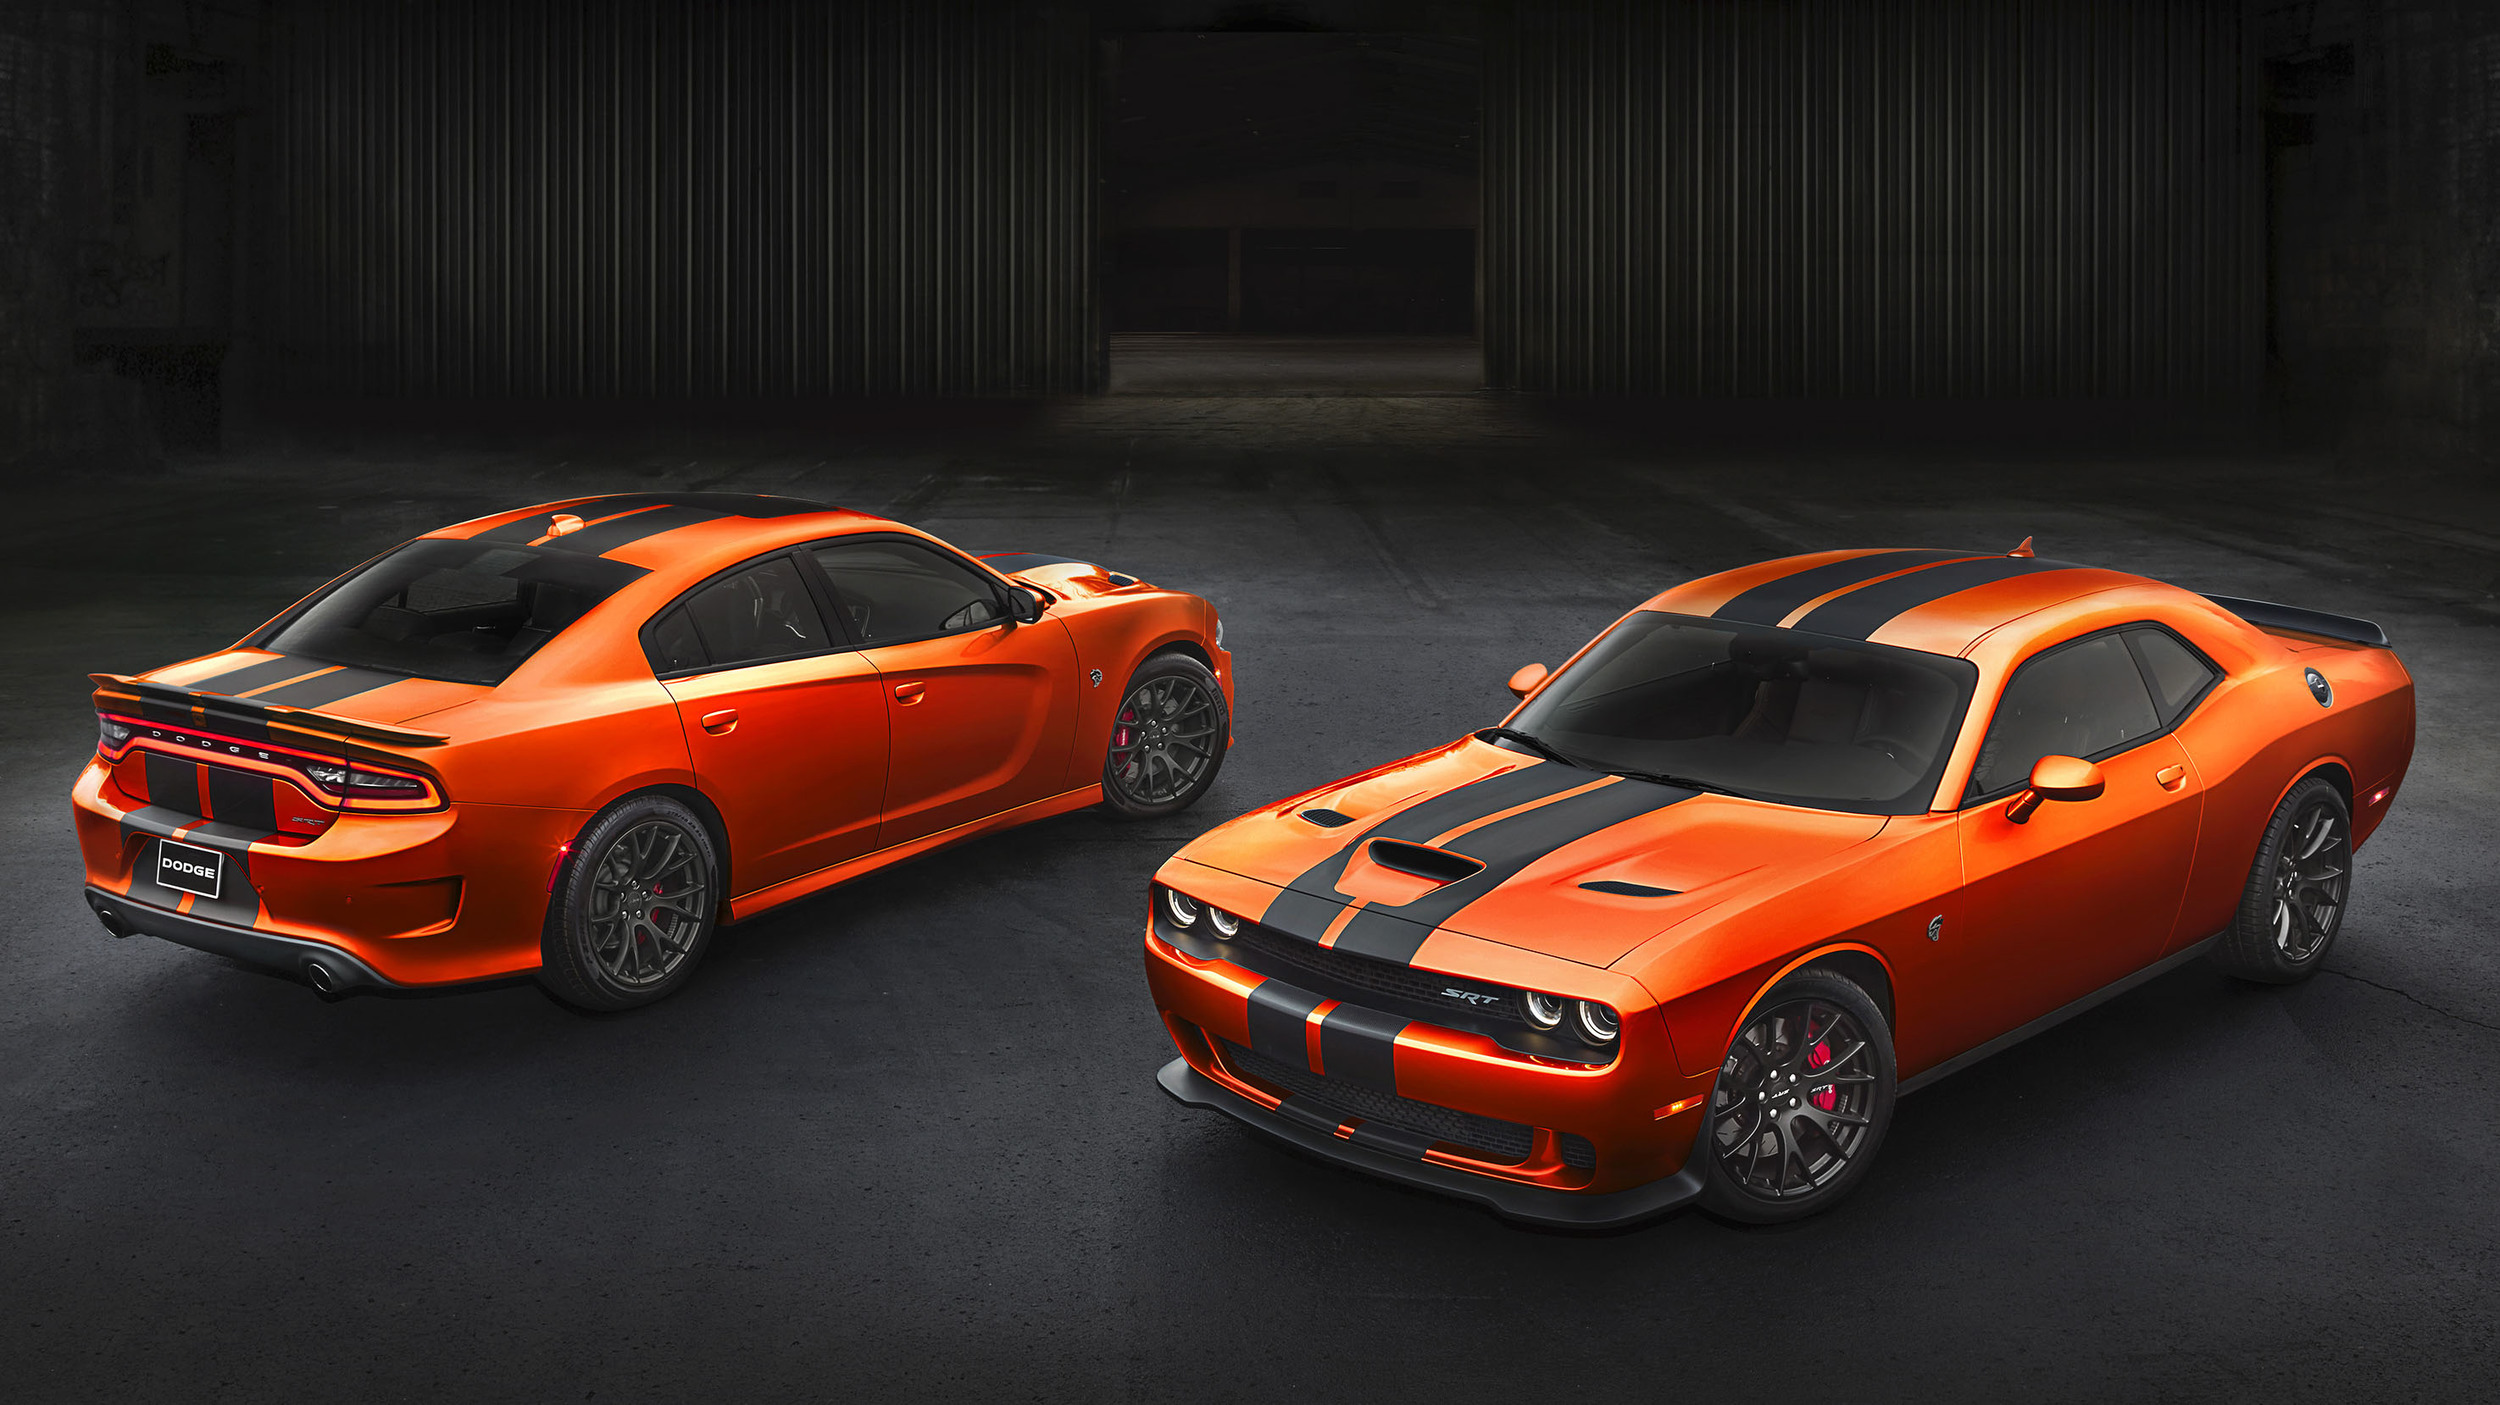 The 2016 Dodge Charger and Challenger SRT Hellcat in bright orange